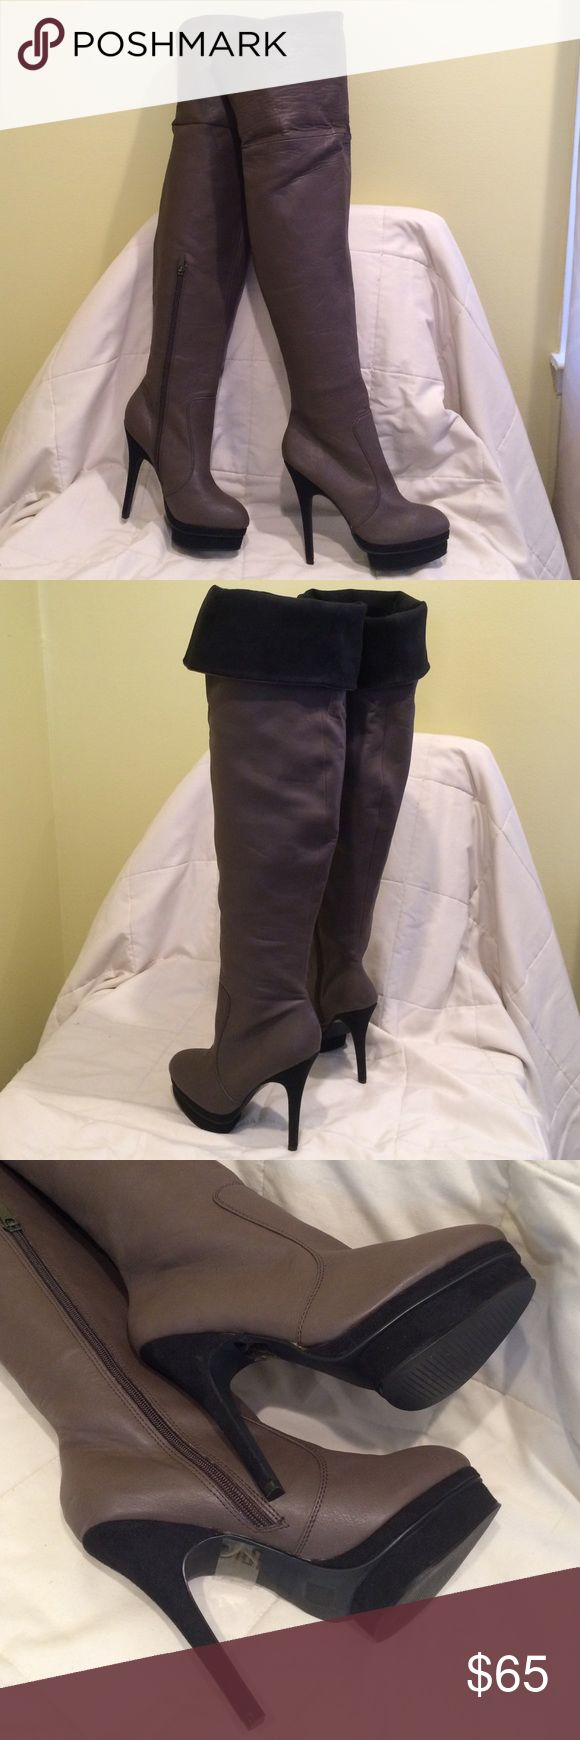 🎄SALE🎄COLIN STUART thigh high boots - brand new COLIN STUART - Authentic - Brand new thigh high boots cocoa color with black suede (all manmade material) new still with tags, No Box. Never worn.💕 Colin Stuart Shoes Over the Knee Boots